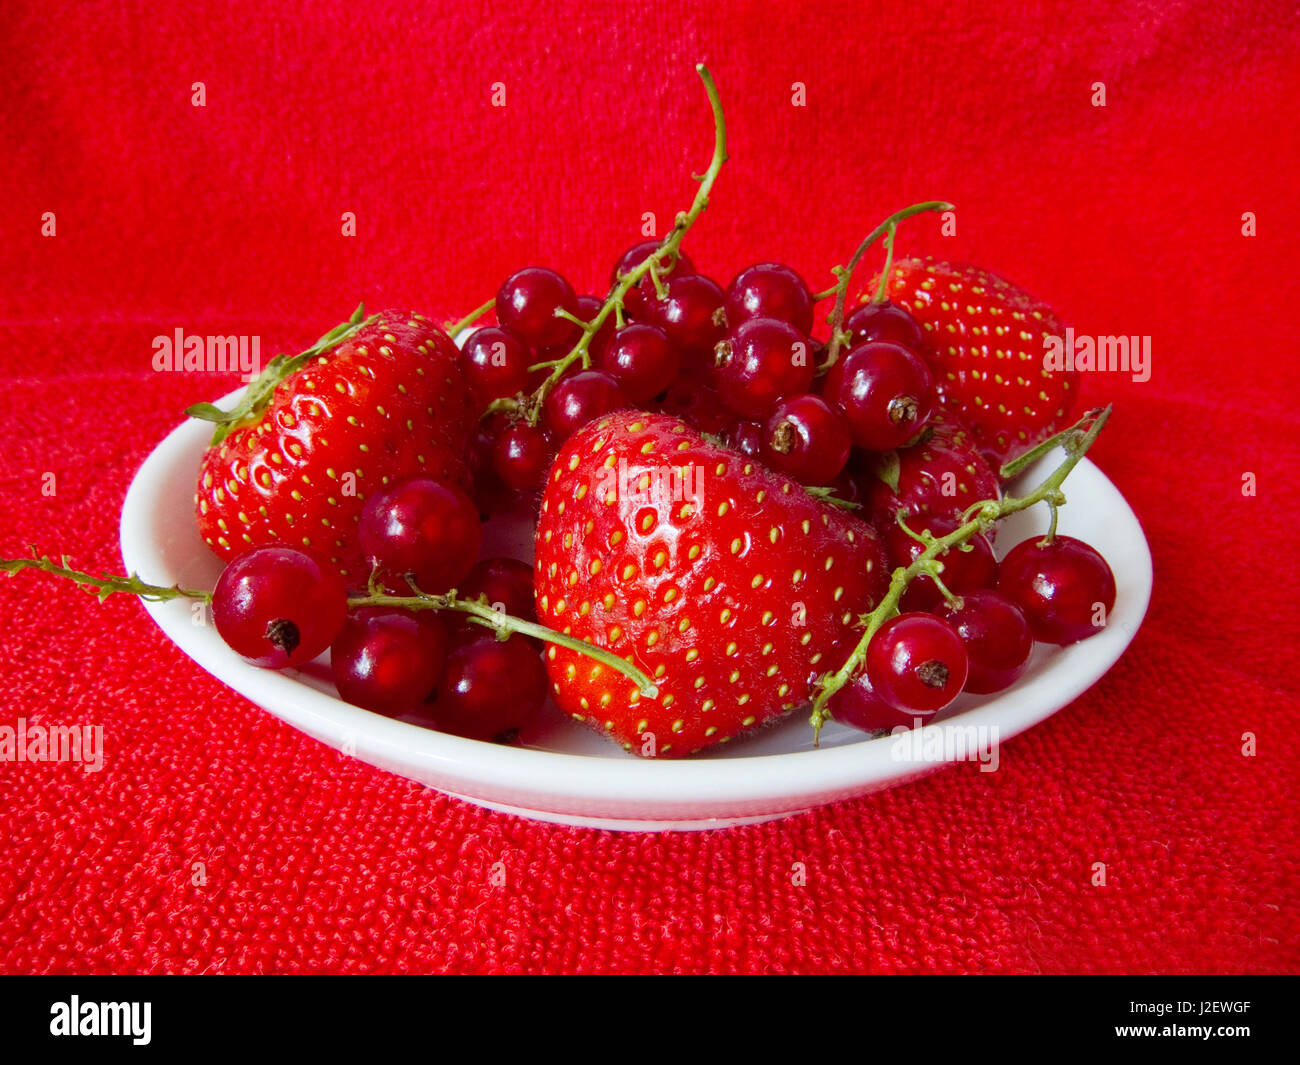 White dish of strawberry and rasberry on red background - Stock Image